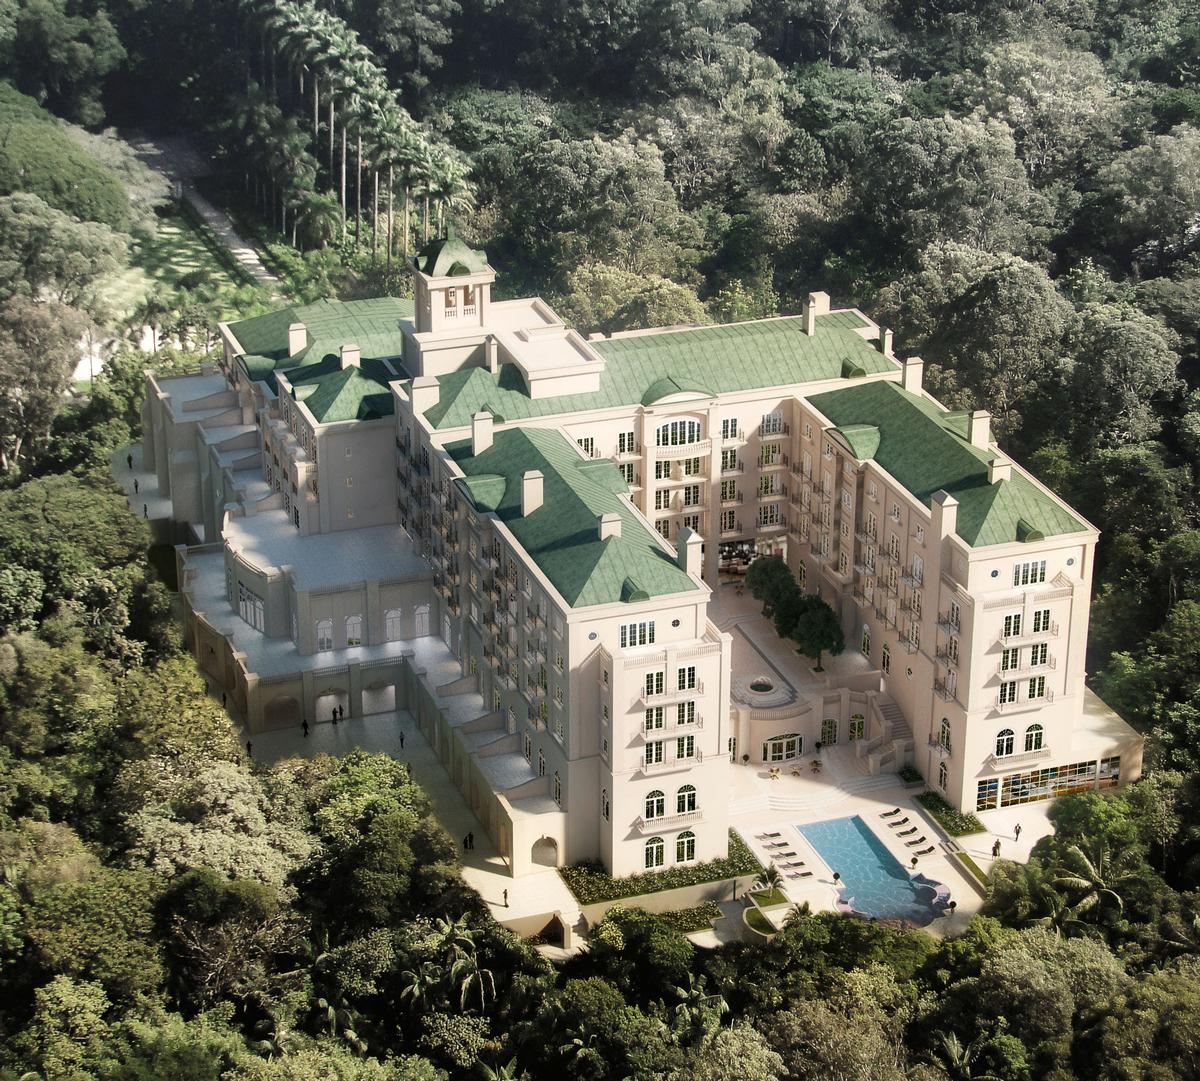 Oetker is also opening The Palacio Tangara in Sao Paolo, Brazil in 2017 / Oetker Collection